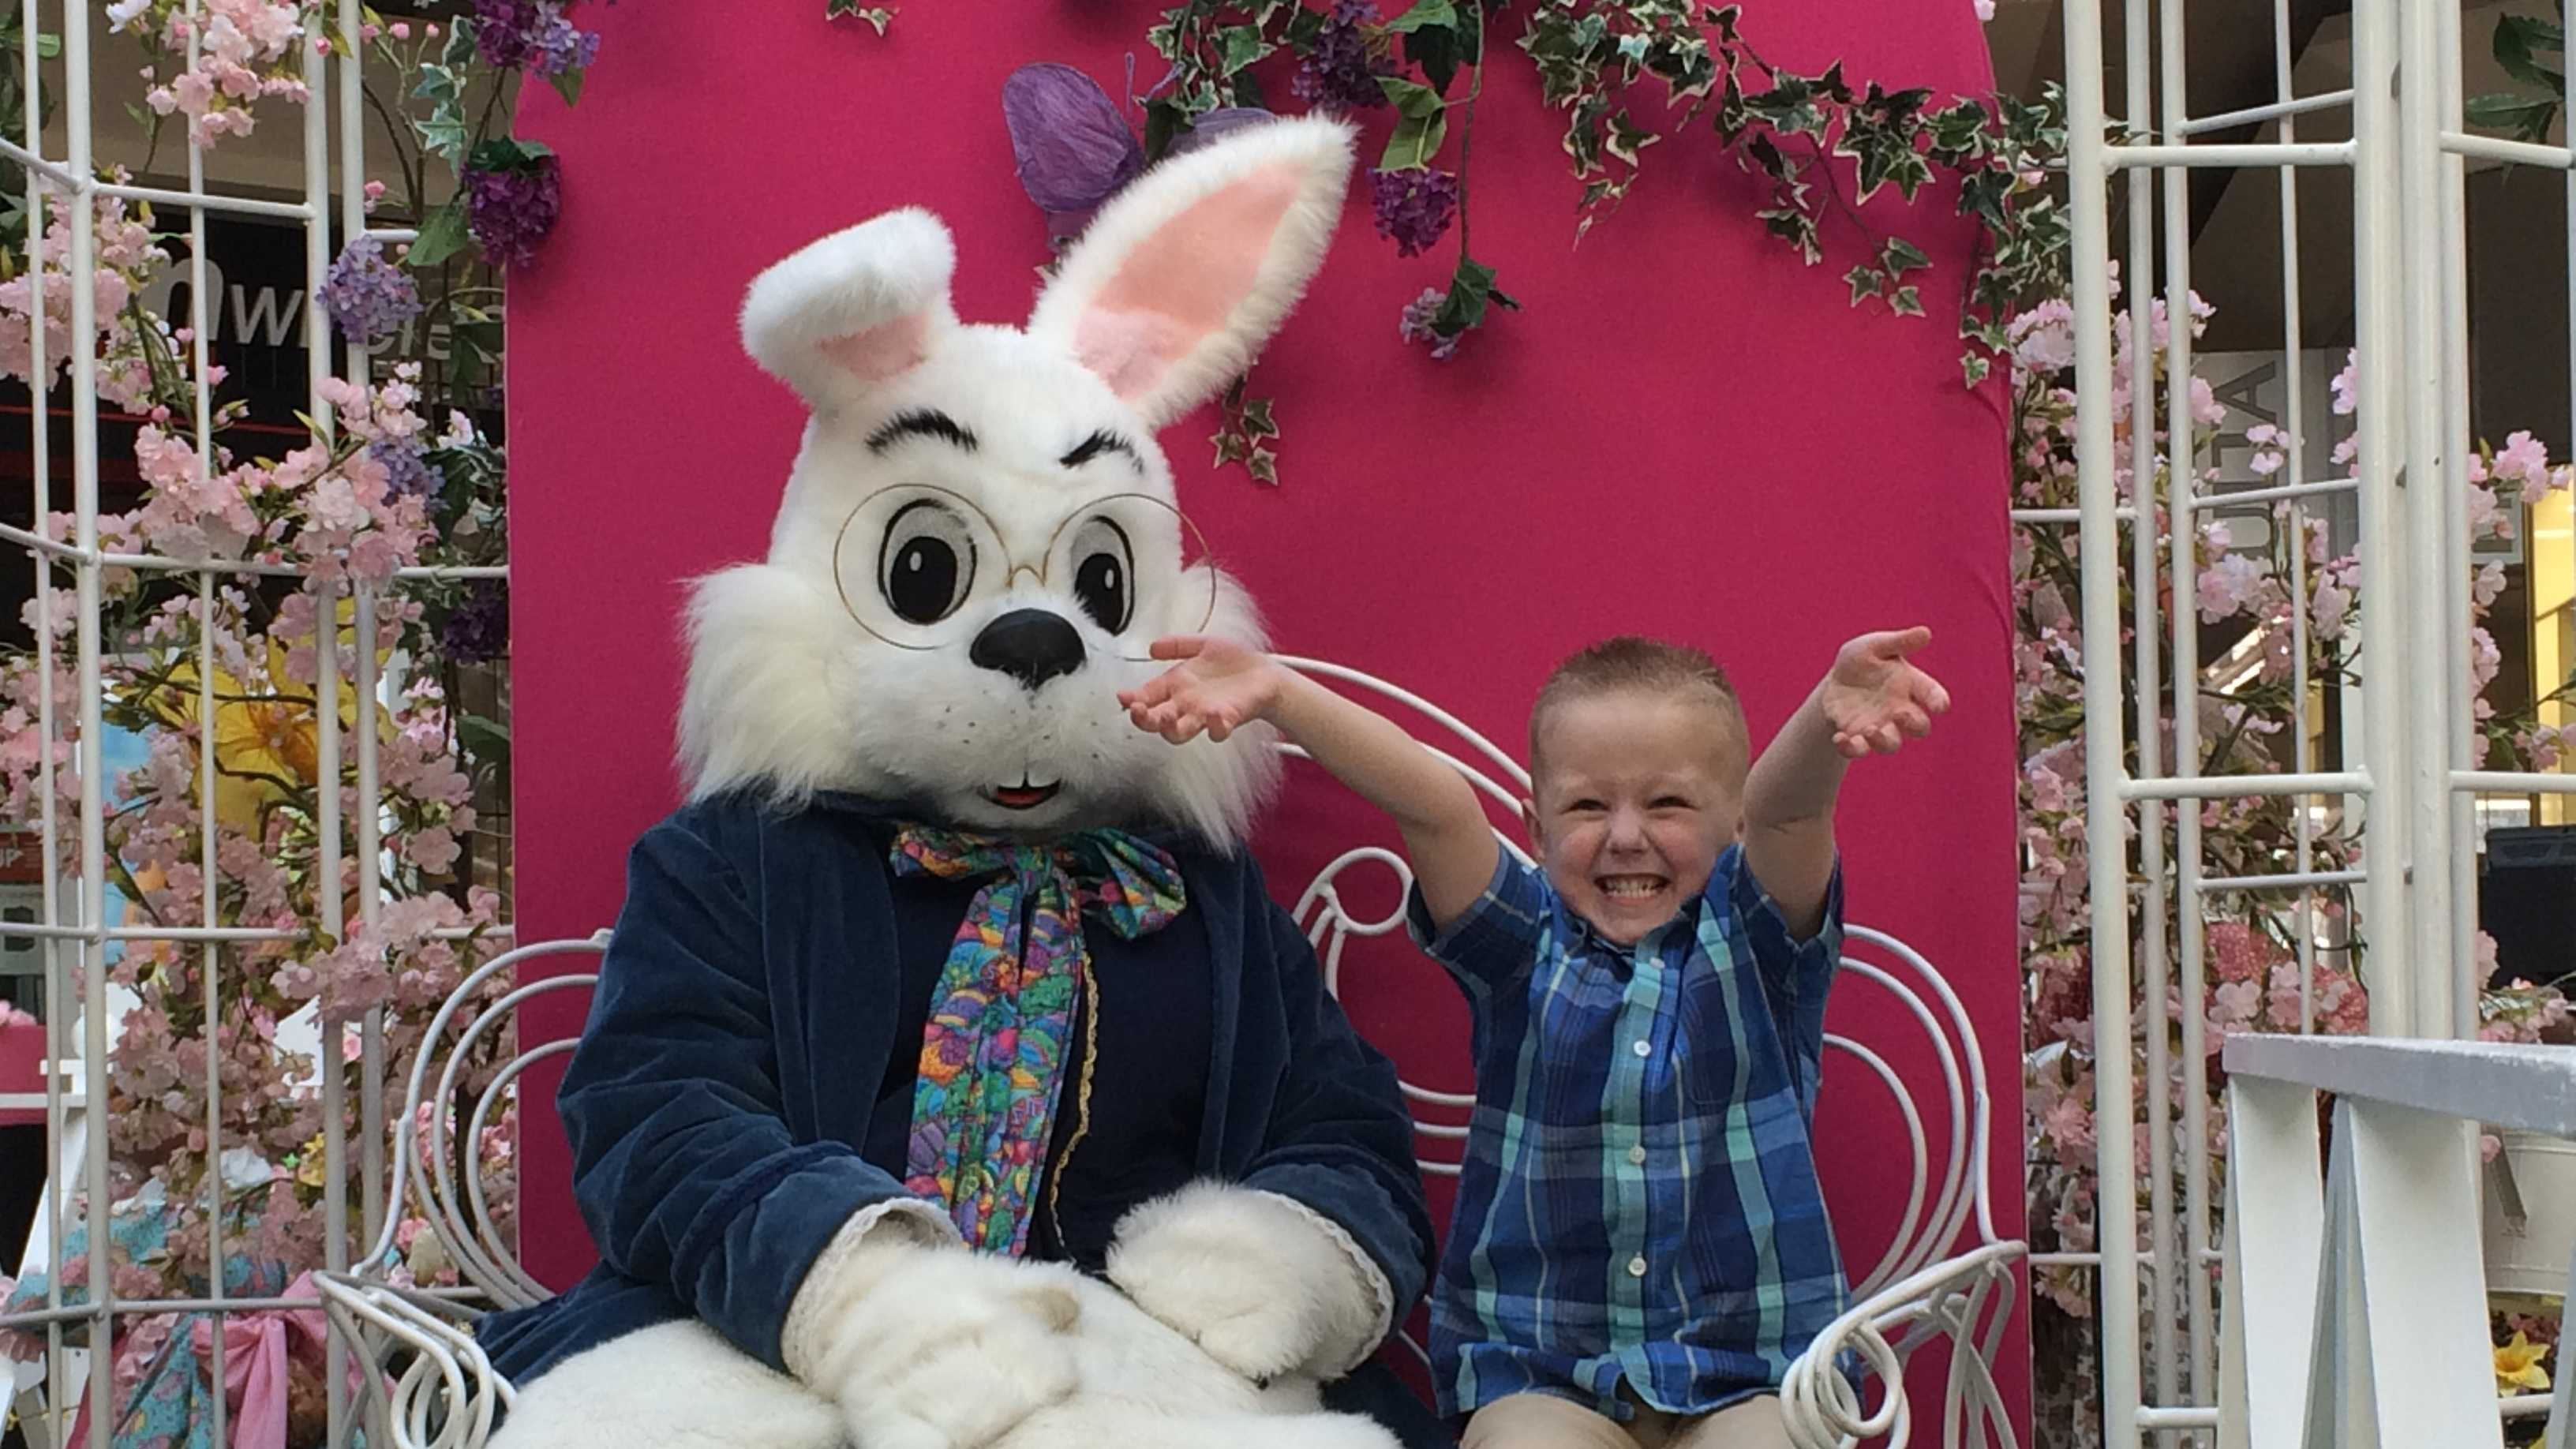 Simon Malls across the Granite State hosted a special event for special-needs children Sunday morning called Caring Bunny.